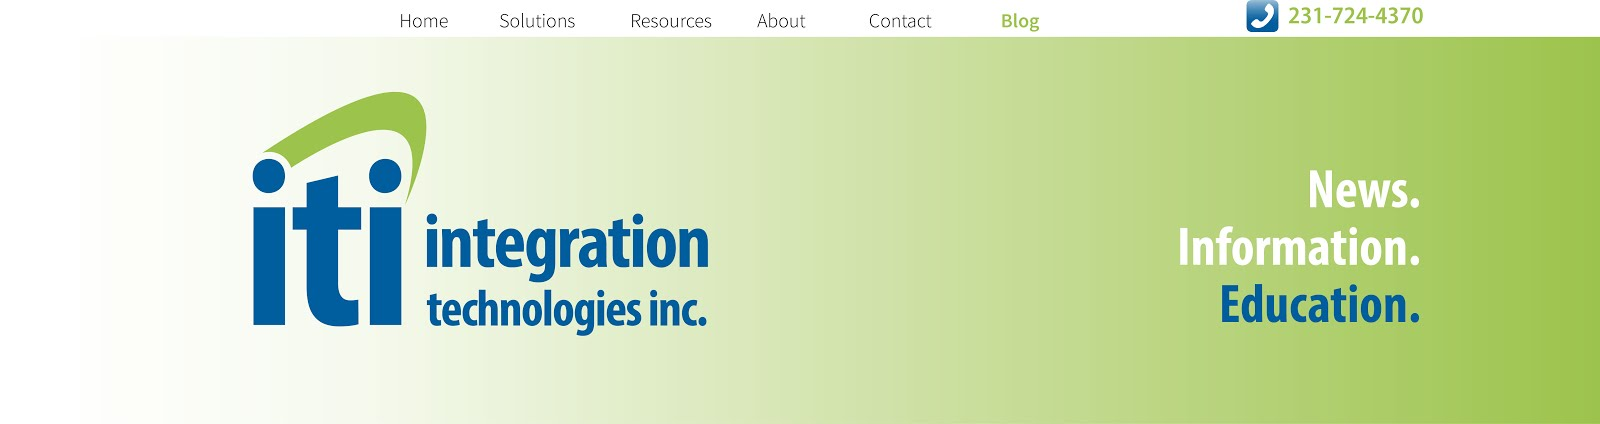 Integration Technologies, Inc.